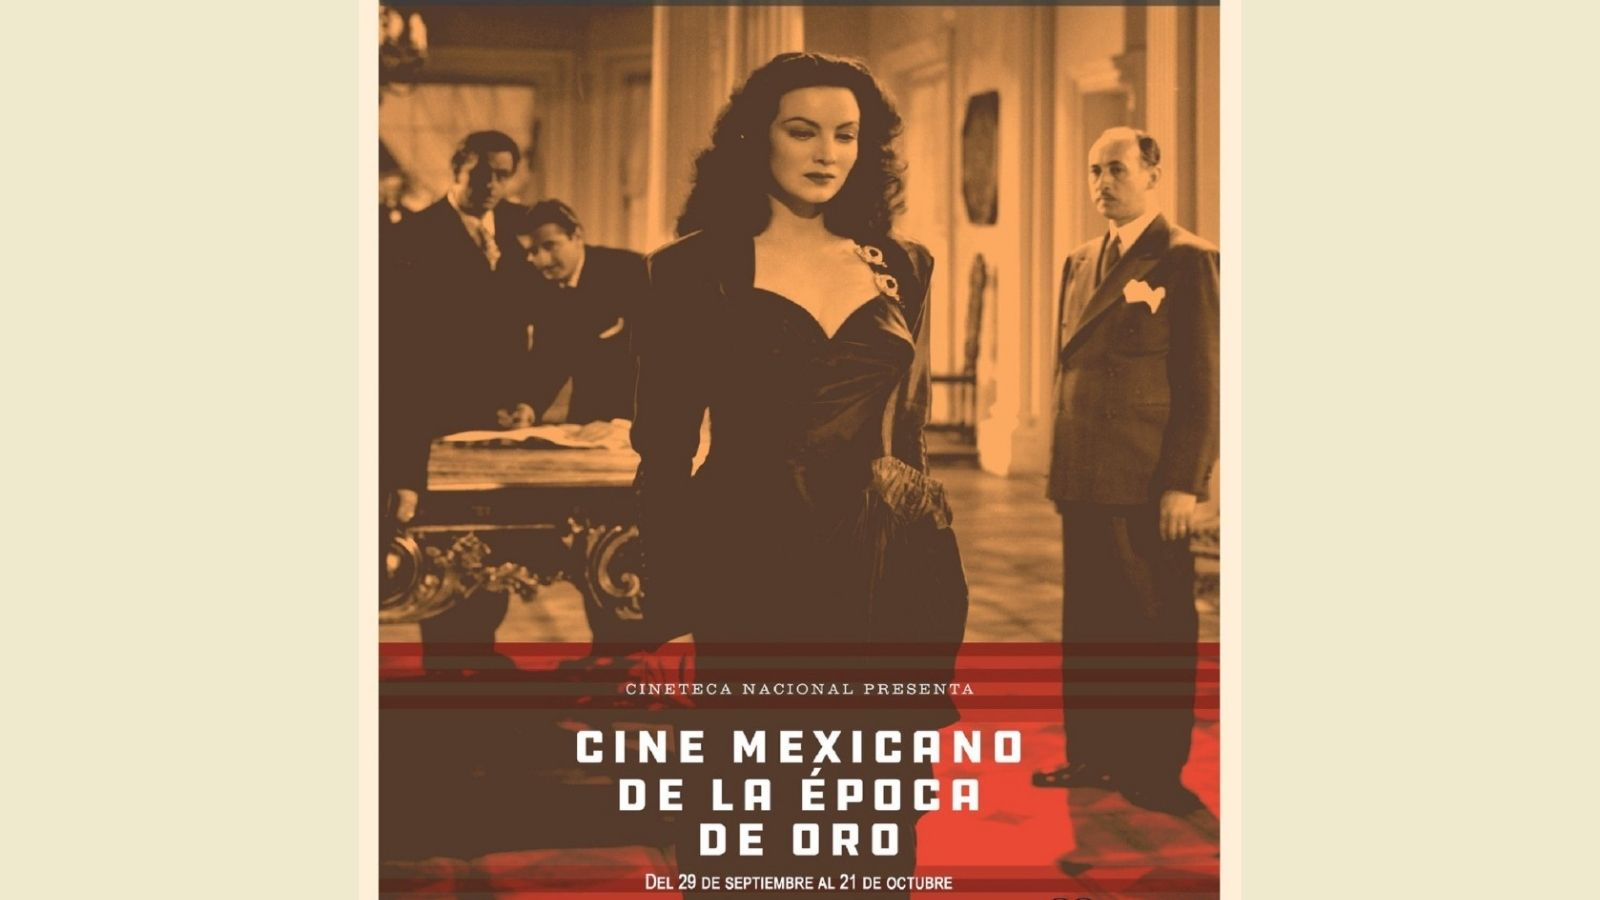 REVIVE CINETECA MEXIQUENSE ÉPOCA DE ORO DEL CINE MEXICANO